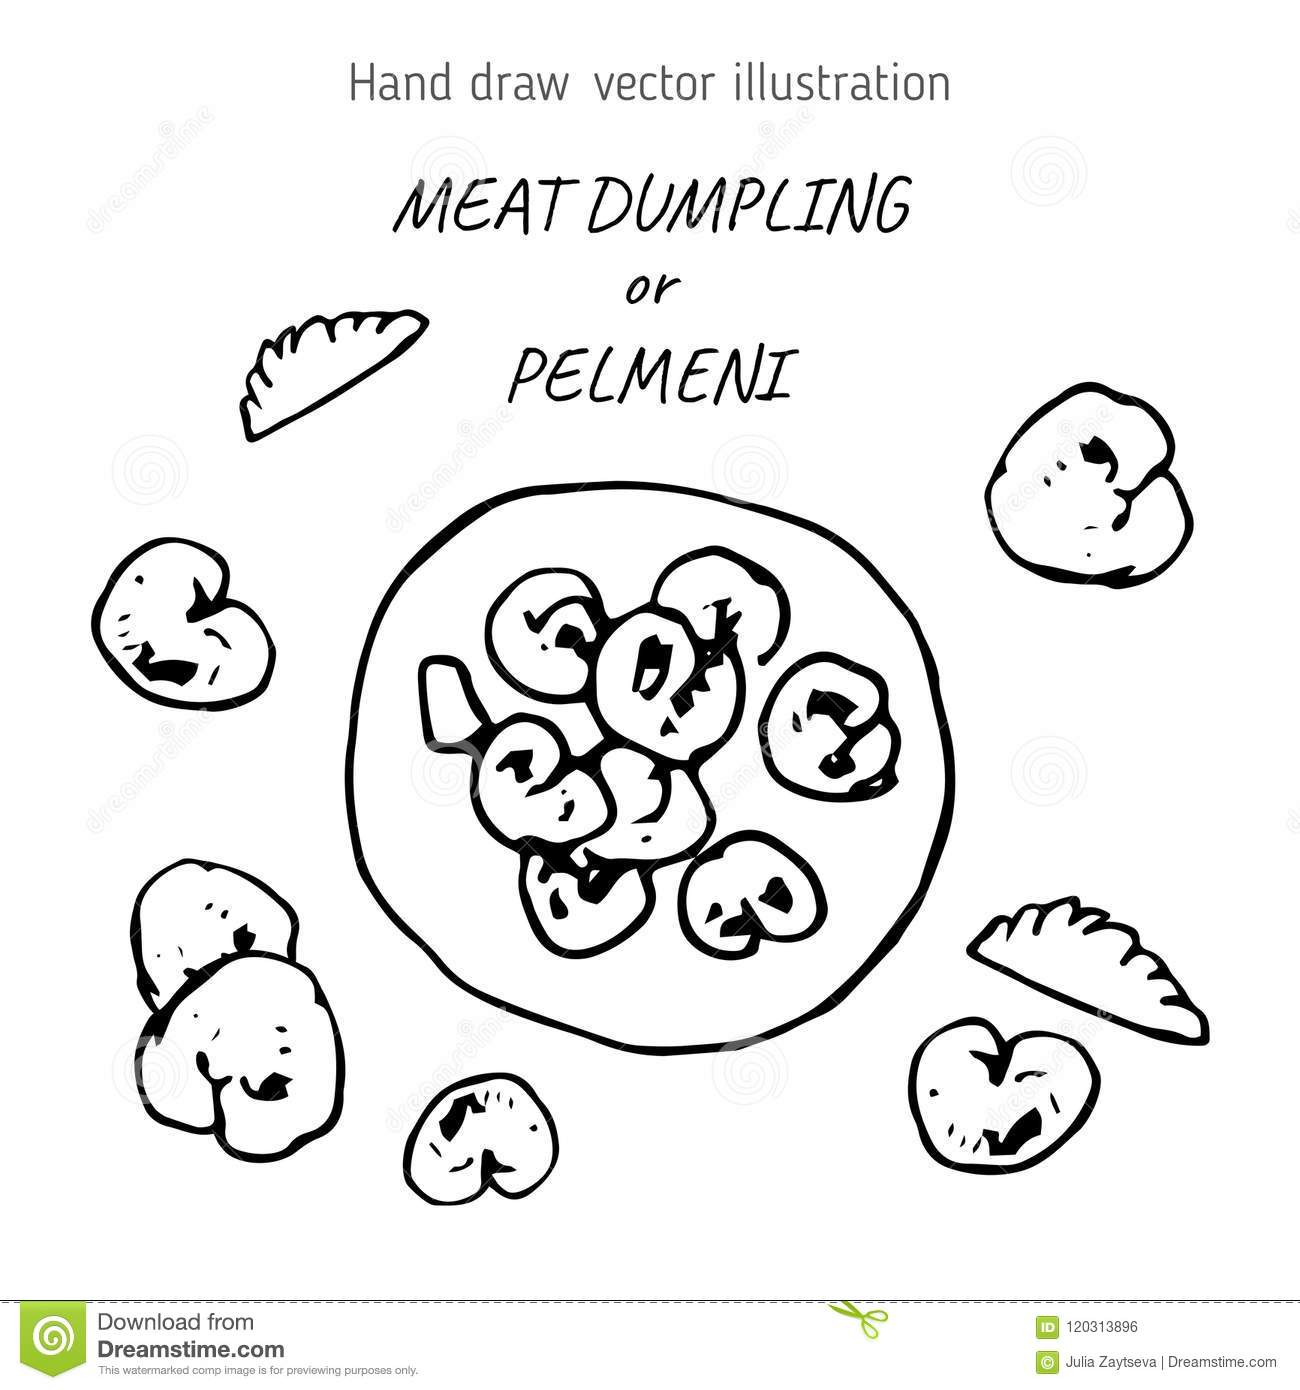 dumplings with meat hand drawn stock illustration illustration of  dumplings with meat hand drawn